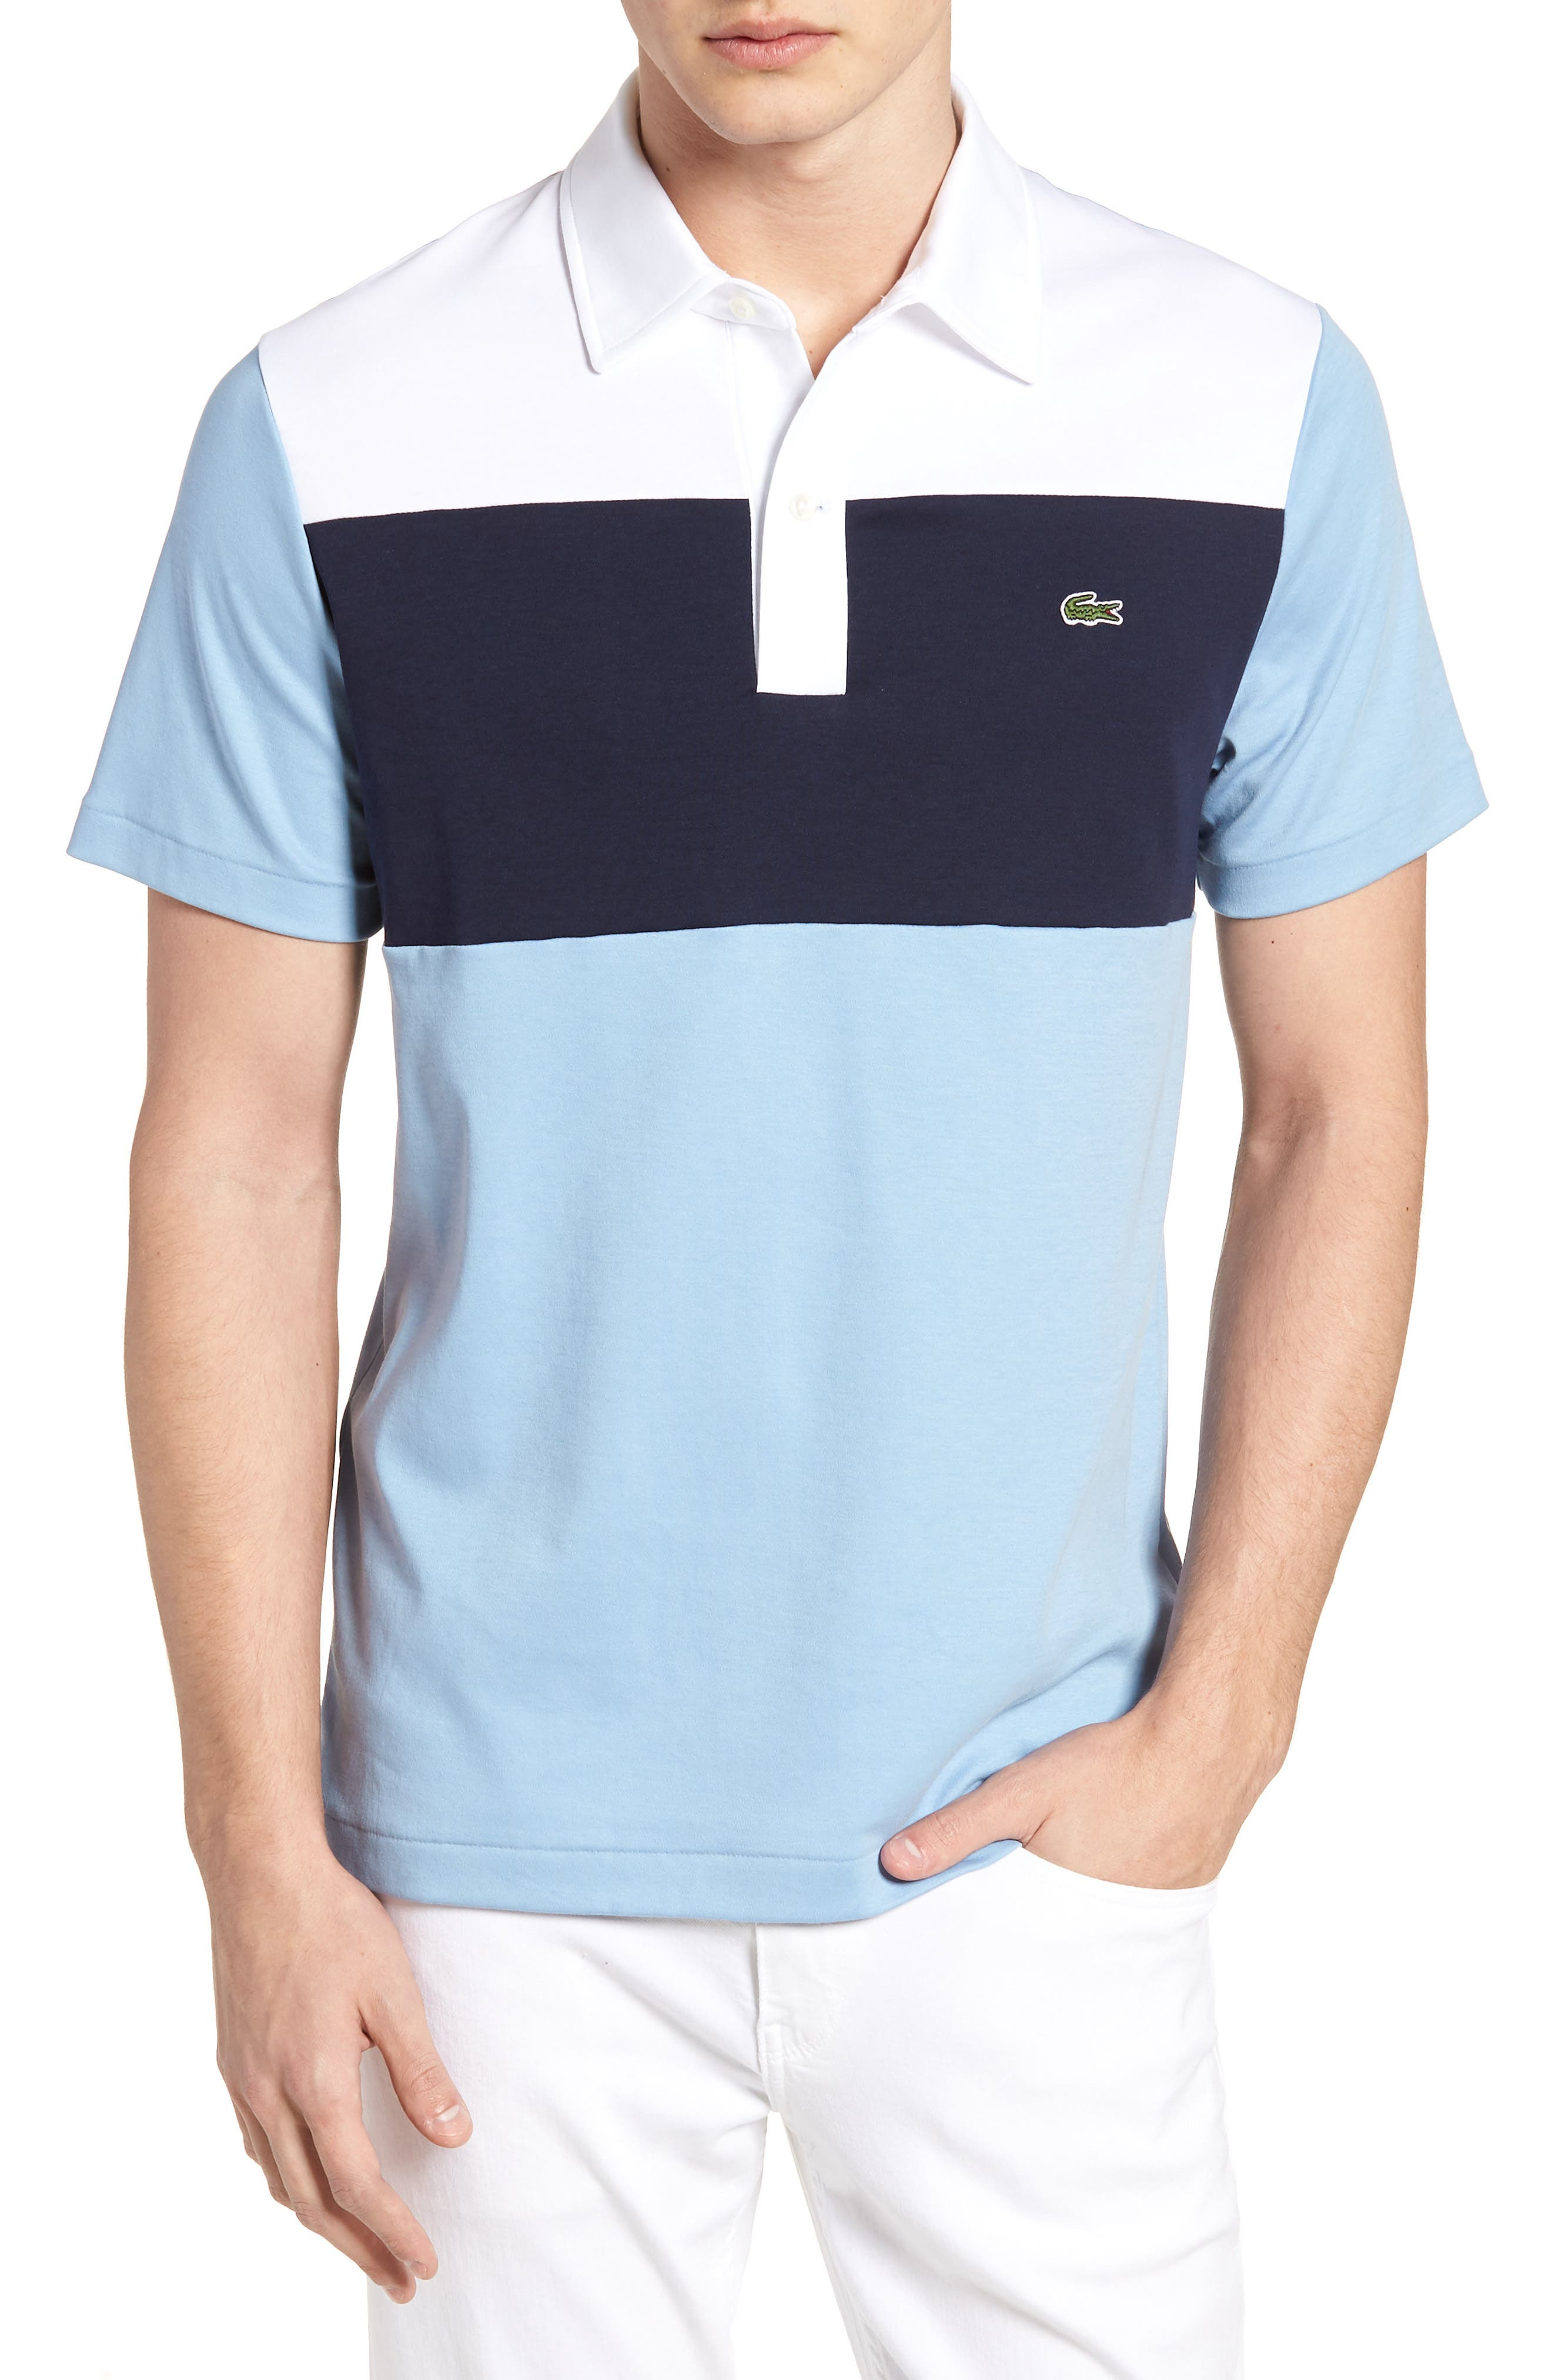 LACOSTE, 85th Anniversary Polo, Main thumbnail 1, color, 400